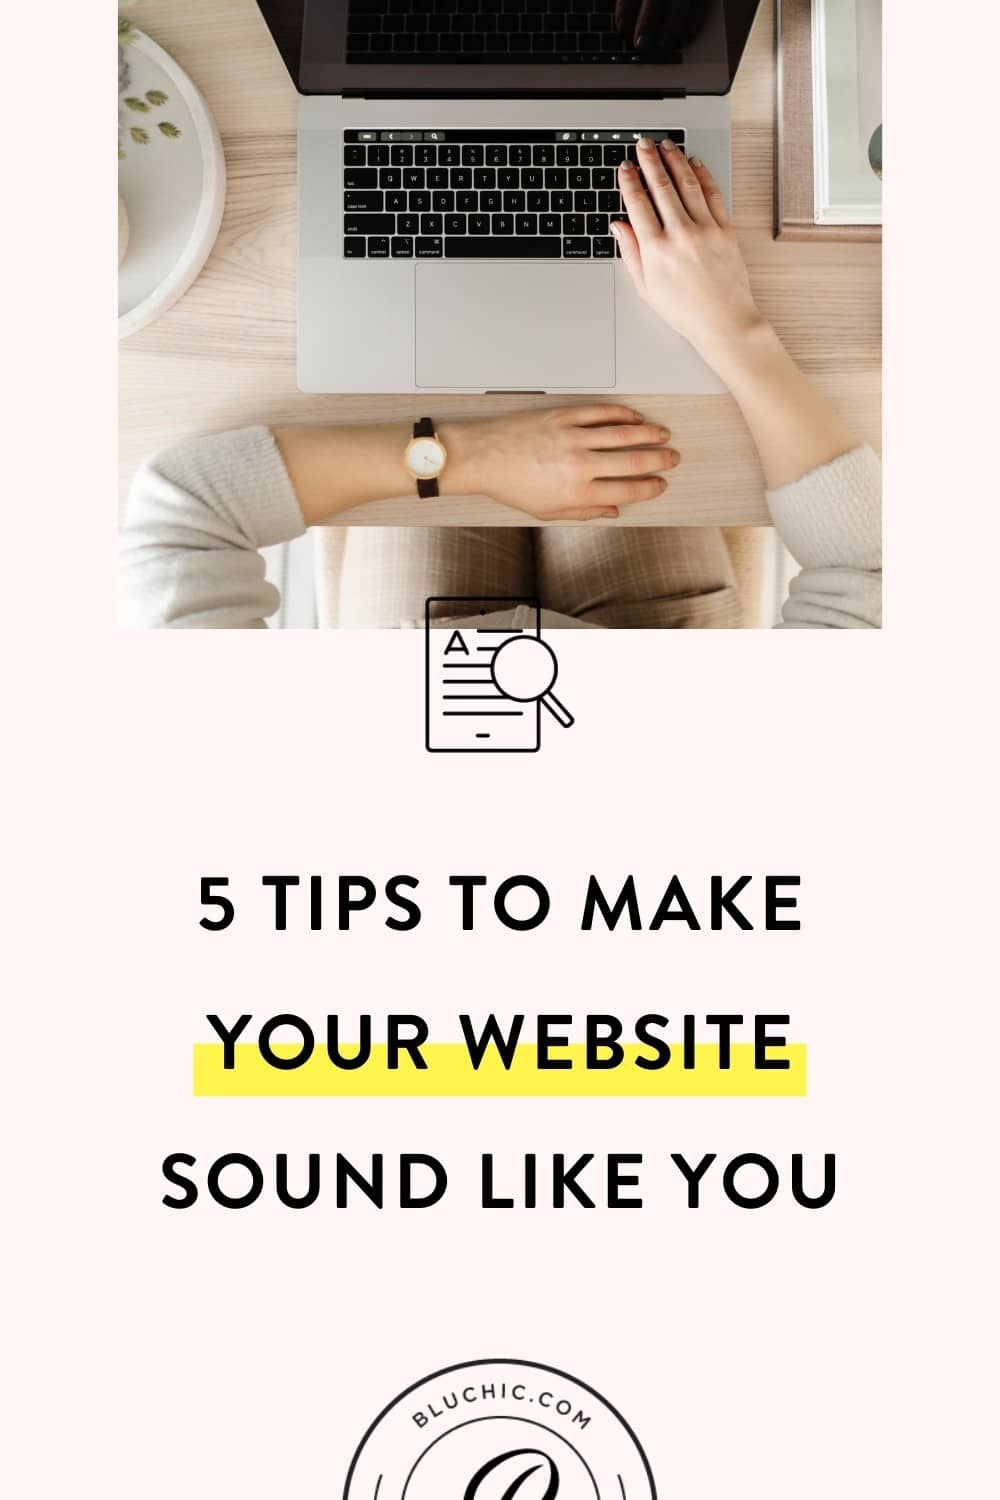 5 Tips to Make Your Website Sound Like You | Your customers buy from you. That's why you need a website that sounds like you (or your brand). See 5 tips on how to do that here!